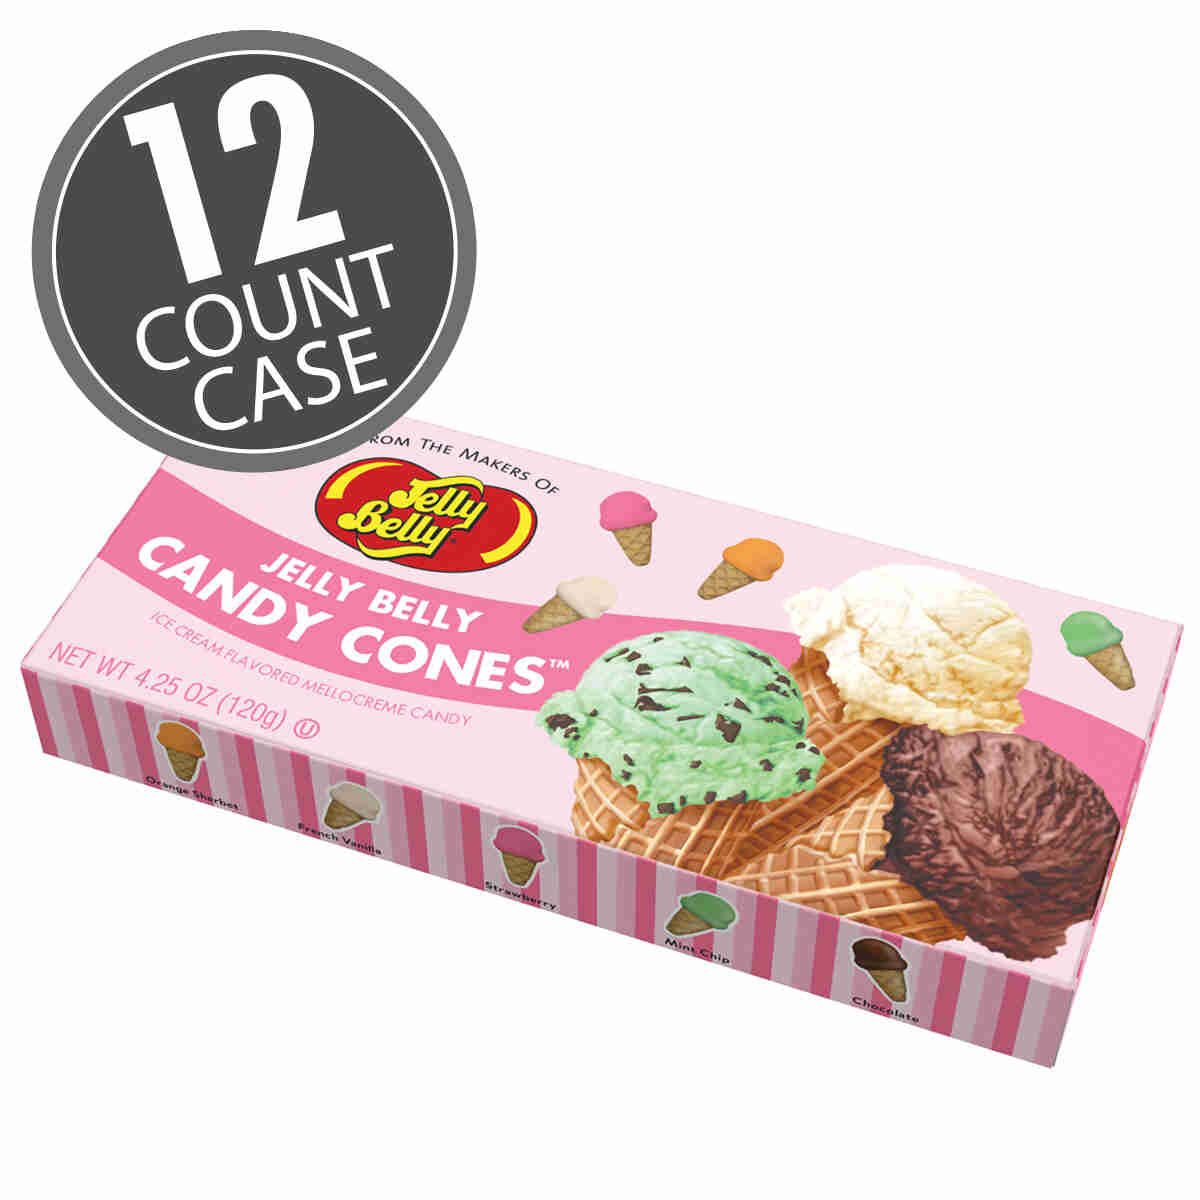 Jelly Belly Candy Cones® - 4.25 oz Gift Box, 12-Count Case